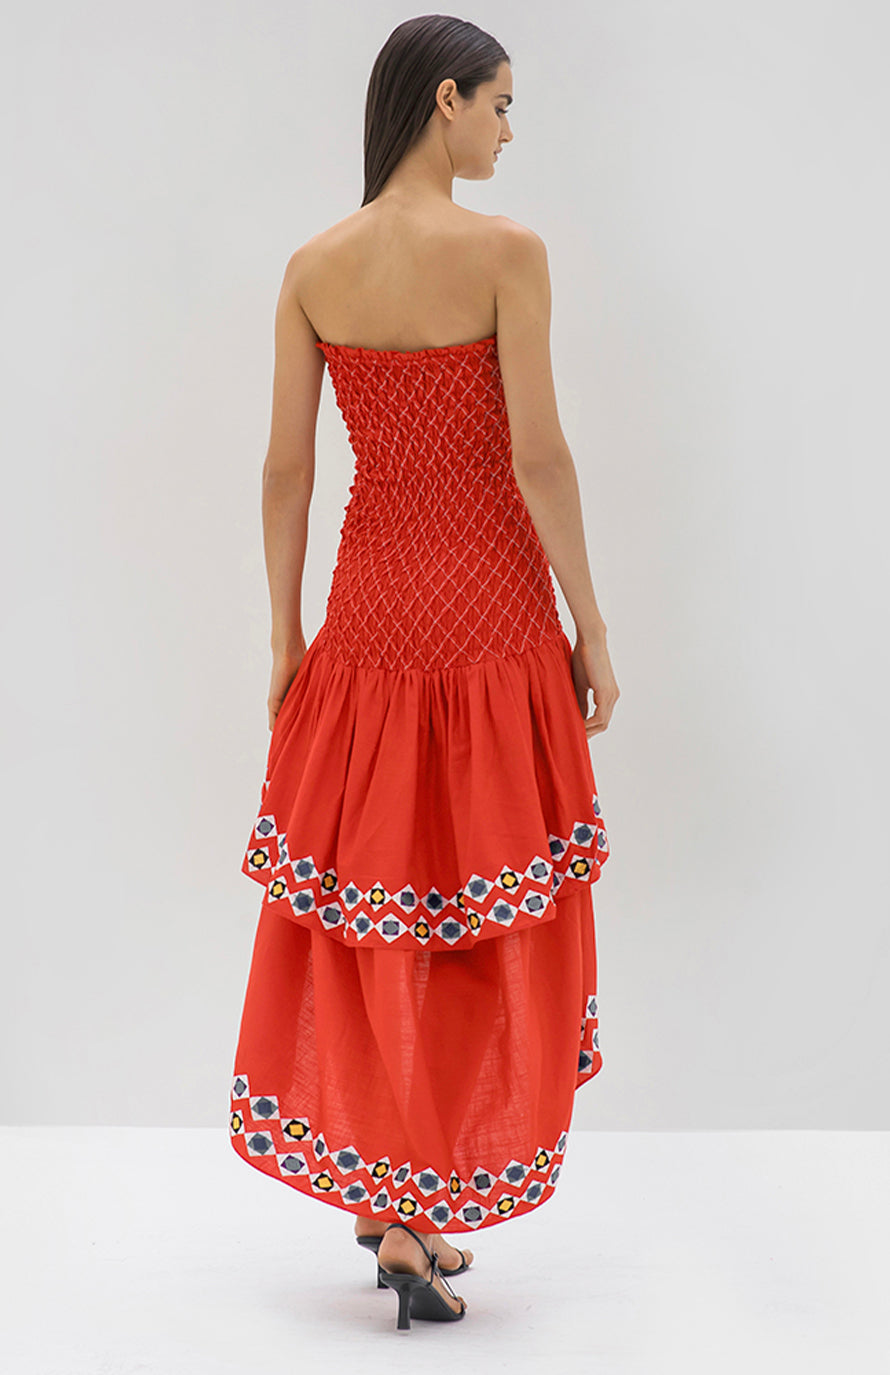 Alexis Revada Dress red geometric embroidery - Rear View